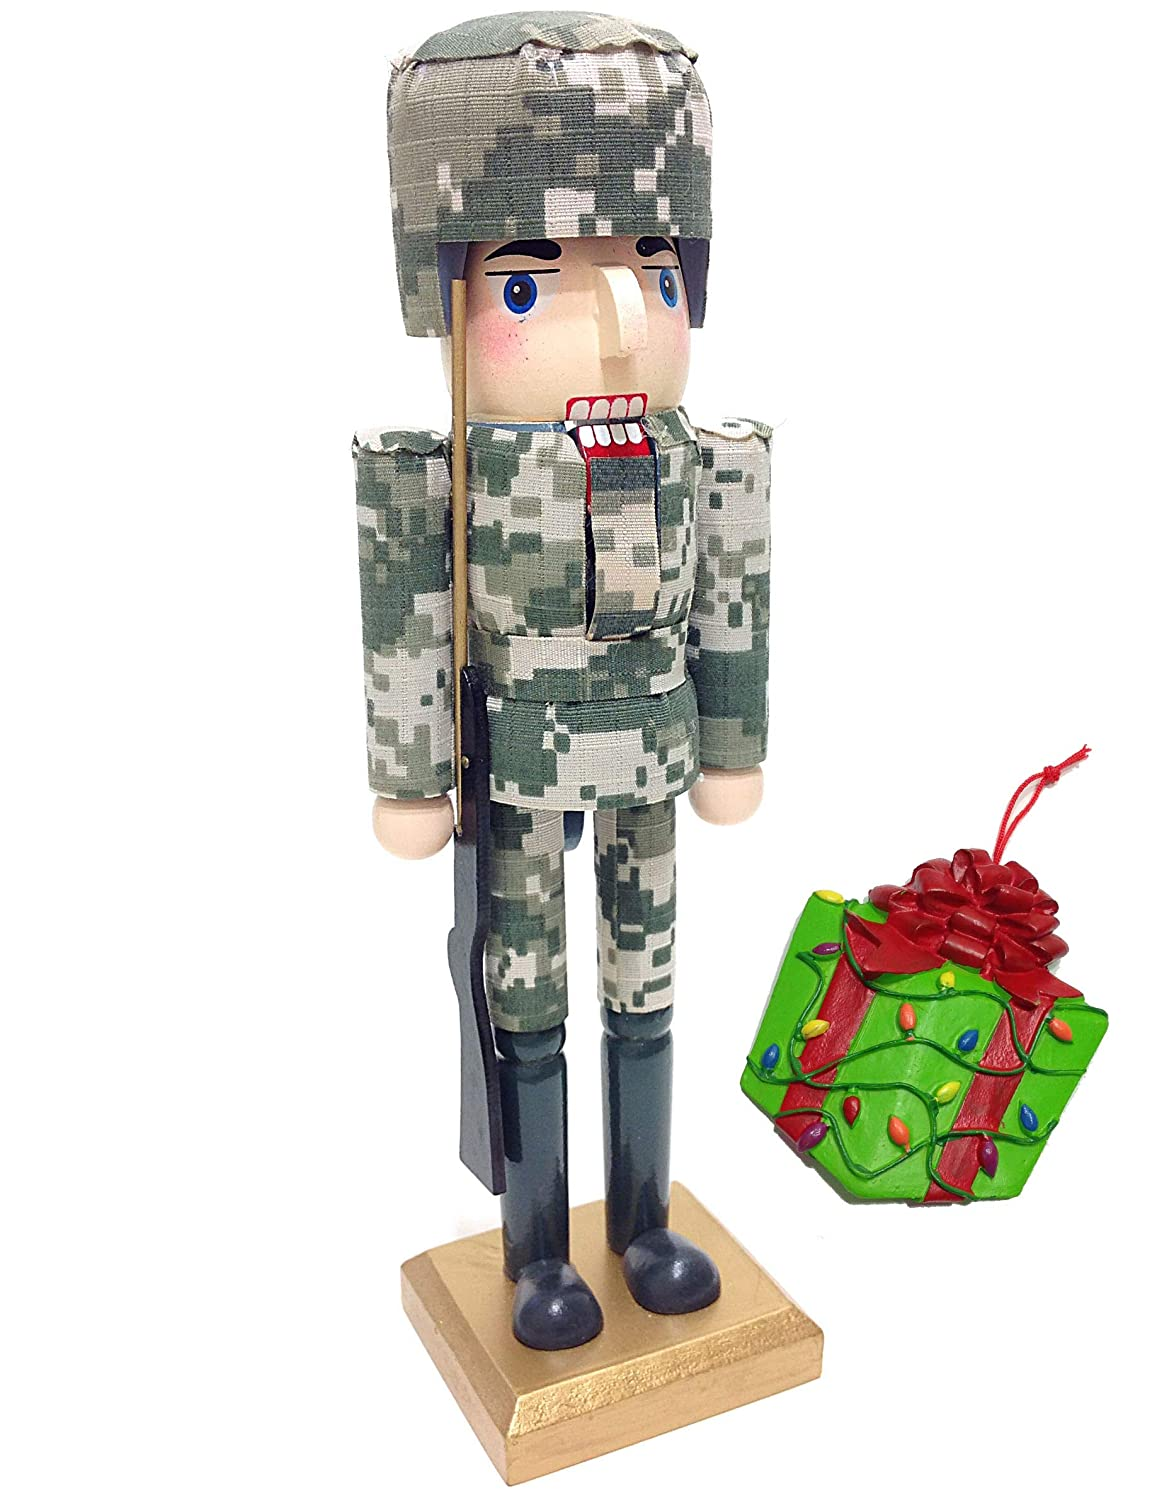 Military Armed Forces Army Soldier Themed Decorative Holiday Season Wooden Christmas Nutcracker & Bonus Tree Ornament Distinctive Designs